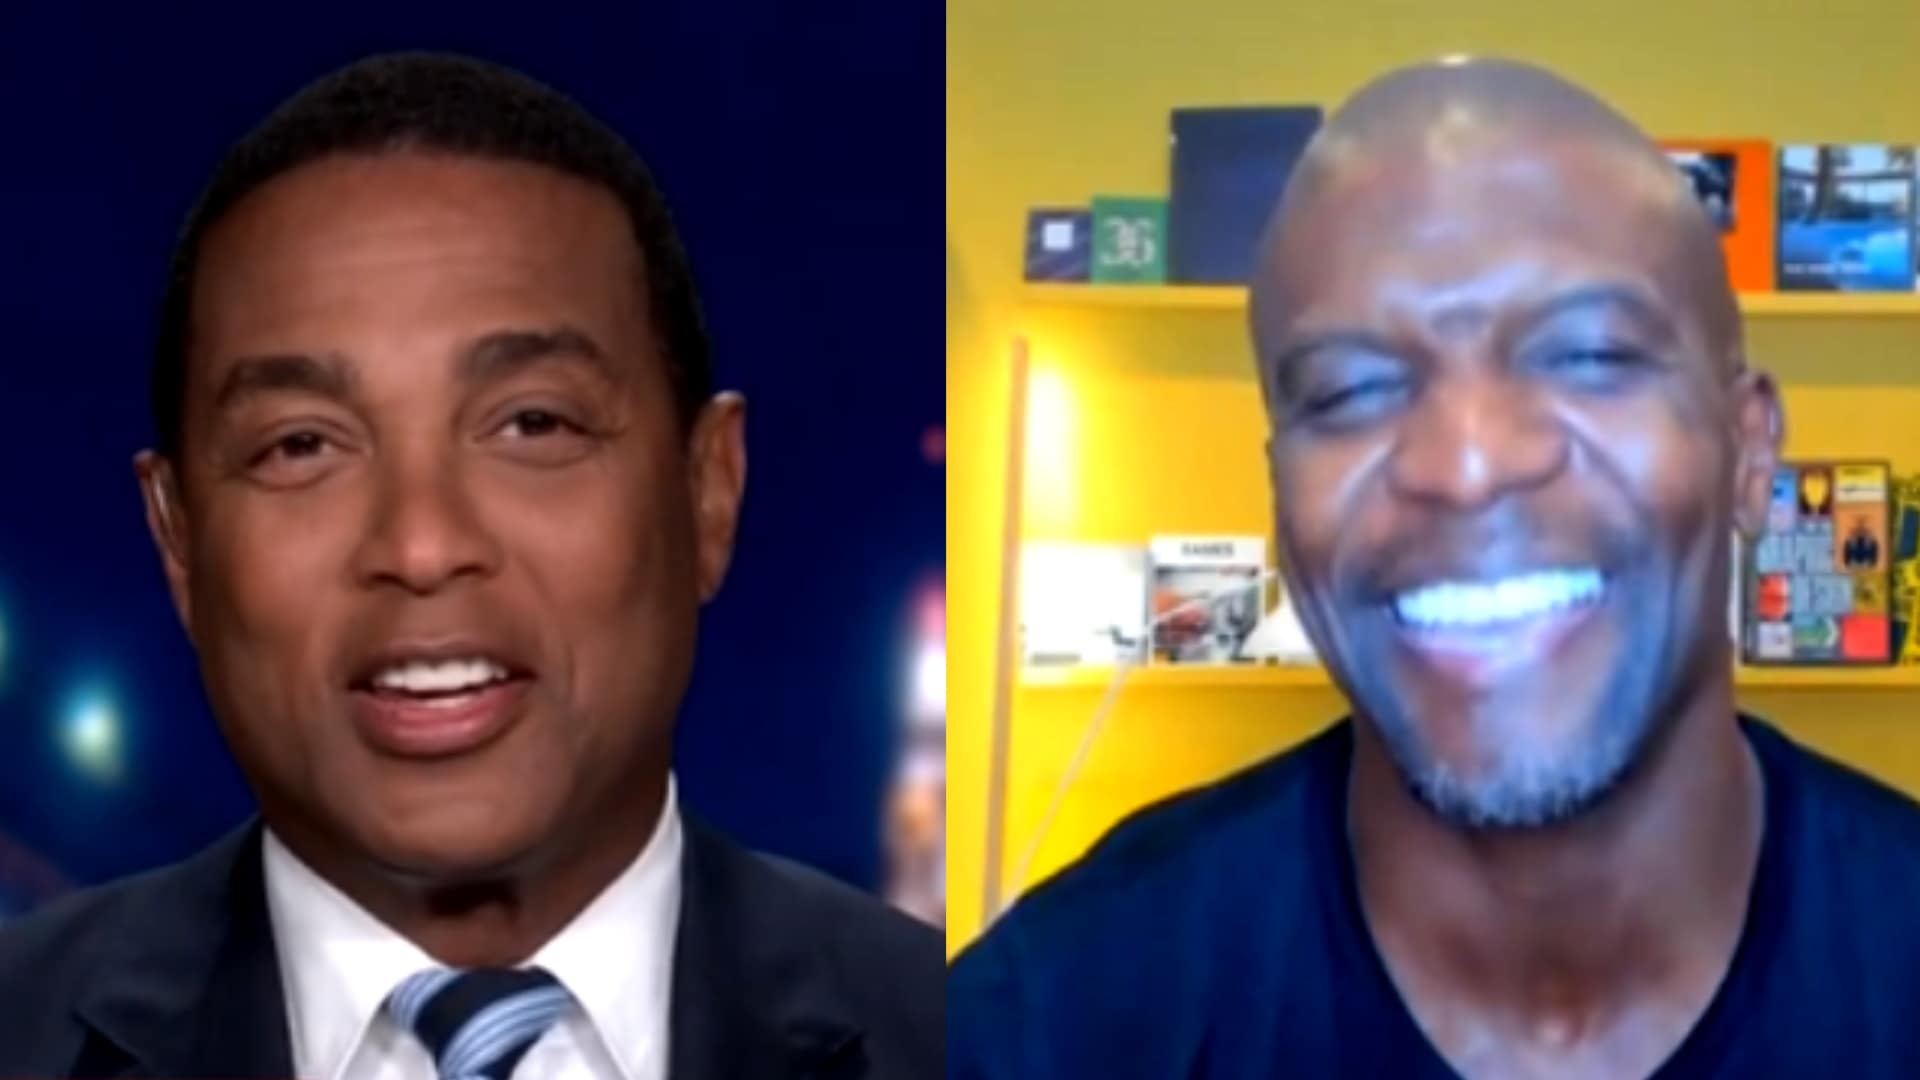 Actor Terry Crews and CNN Tonight host Don Lemon engaged in a spirited debate on CNN last night about Black Lives Matter and what the movement means.